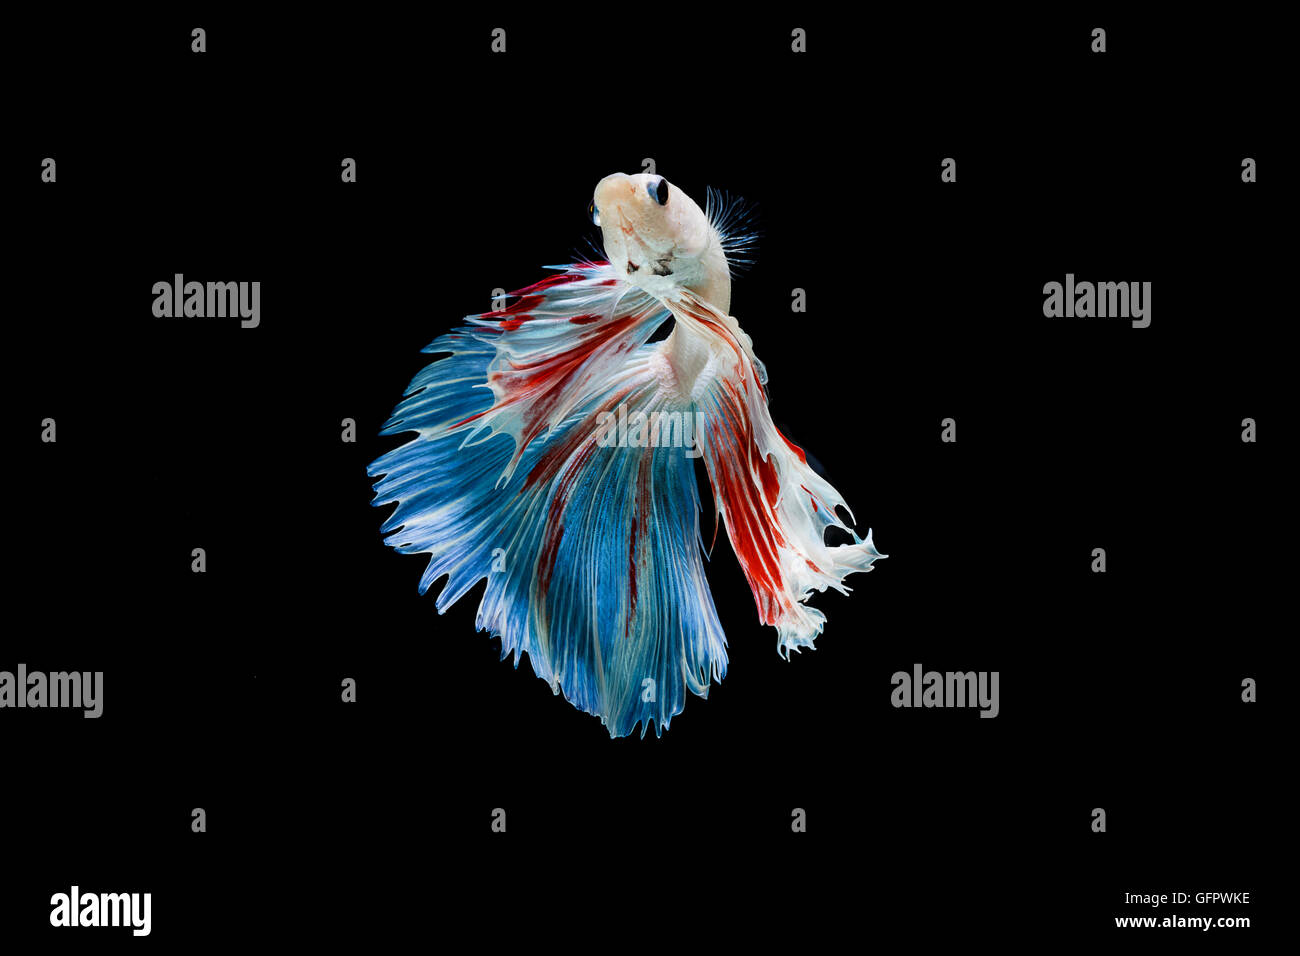 Moment of betta fish, siamese fighting fish isolated on black background - Stock Image